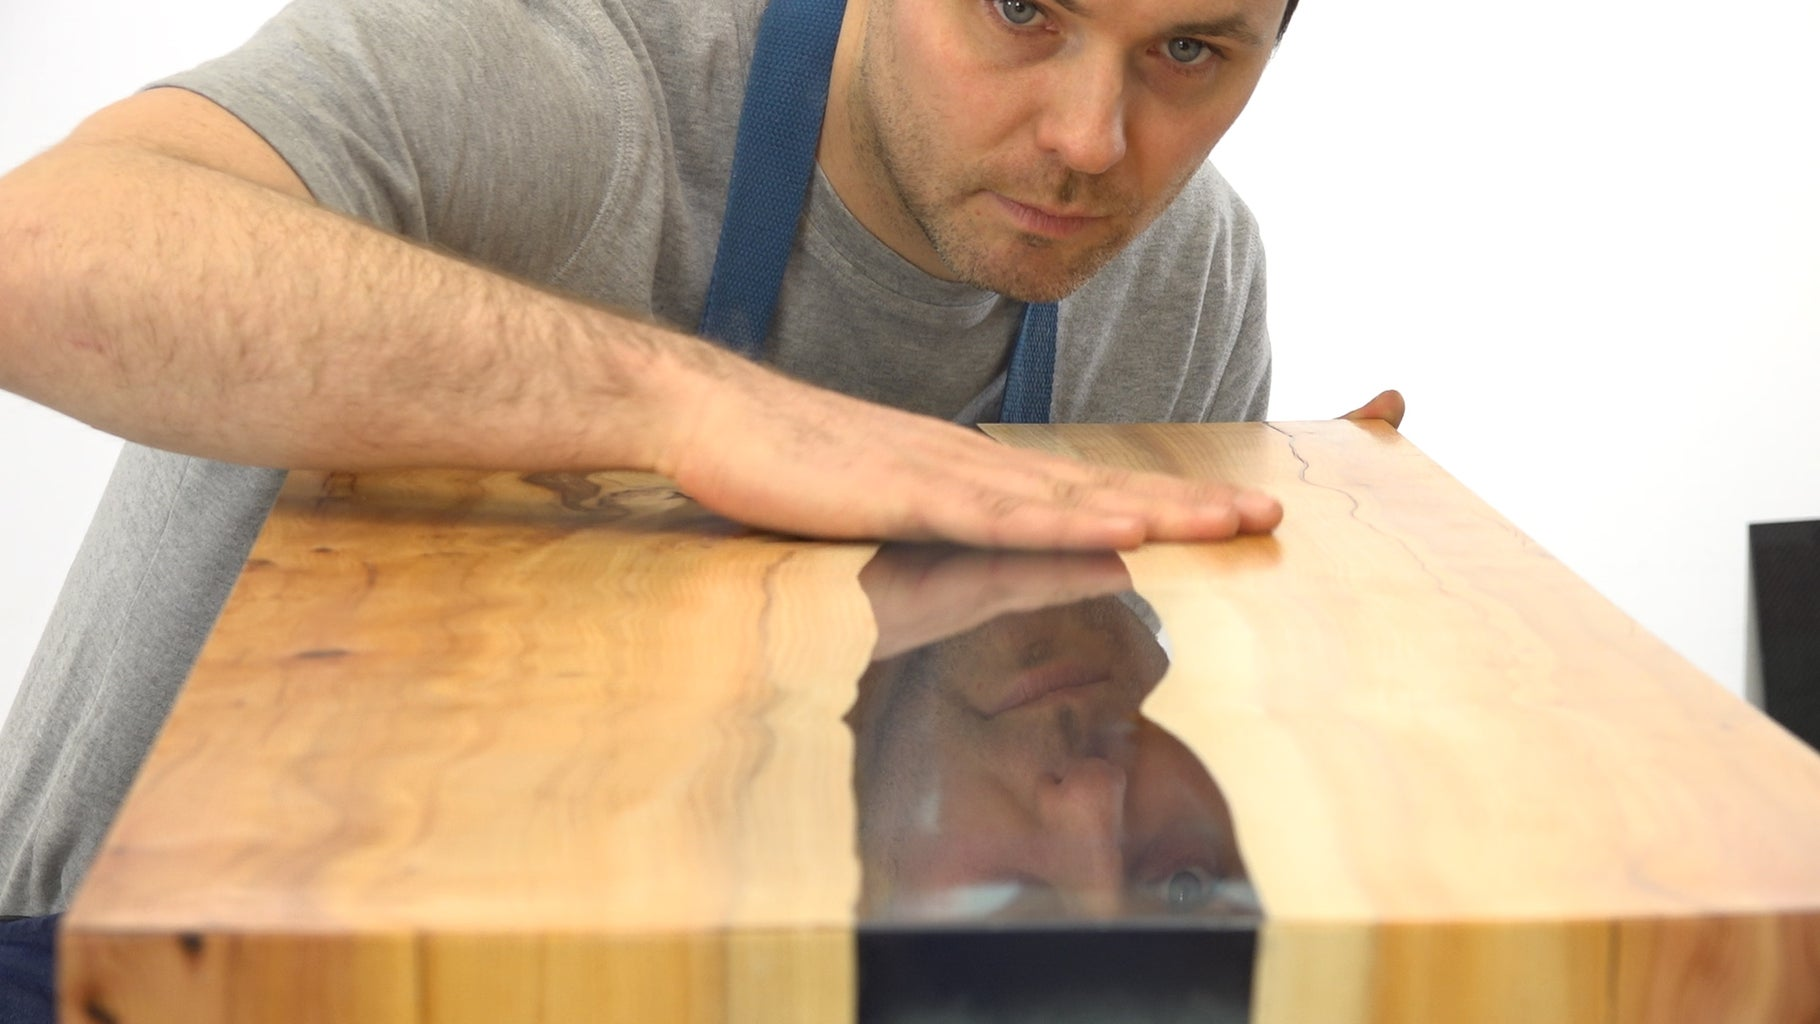 That's How You Make a Live-Edge Epoxy Resin River Table!